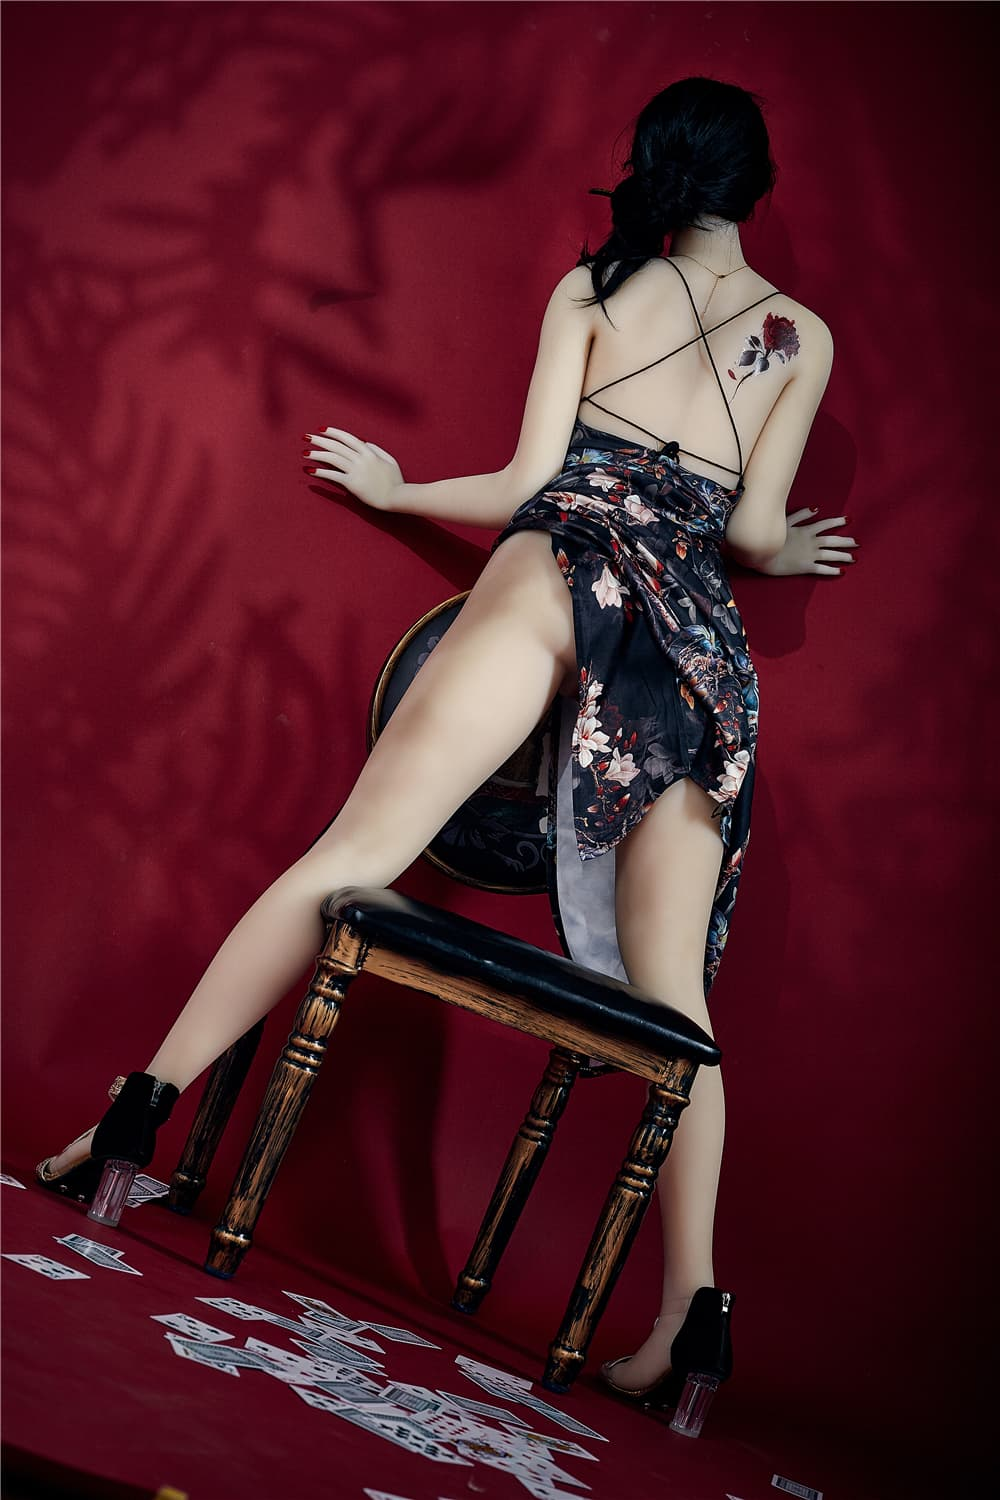 bonita 168cm black hair athletic flat chested tpe sex doll(7)